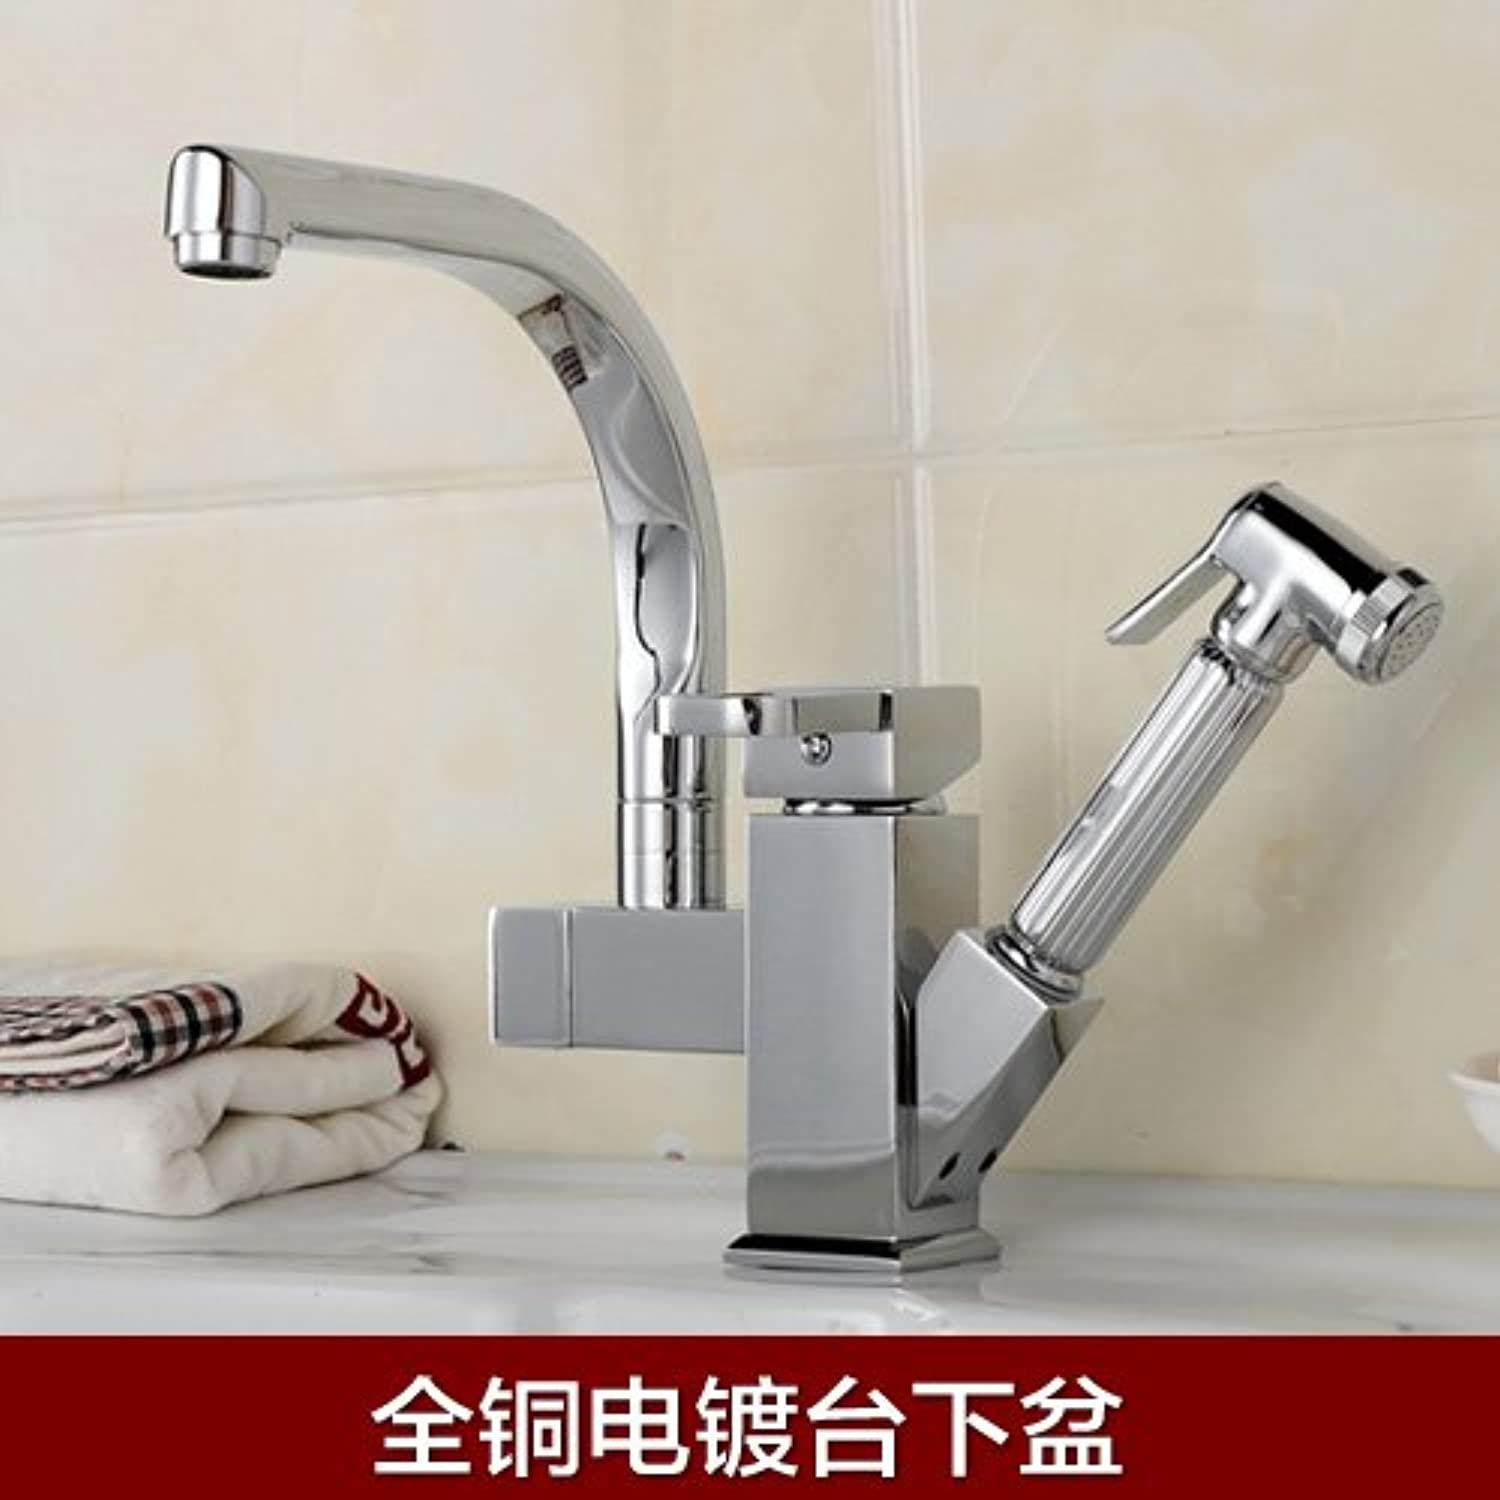 Hlluya Professional Sink Mixer Tap Kitchen Faucet All copper pull-down kitchen faucet hot and cold dish Pool Fittings stretch wash dishes golden taps basin taps on the console, lowered basin